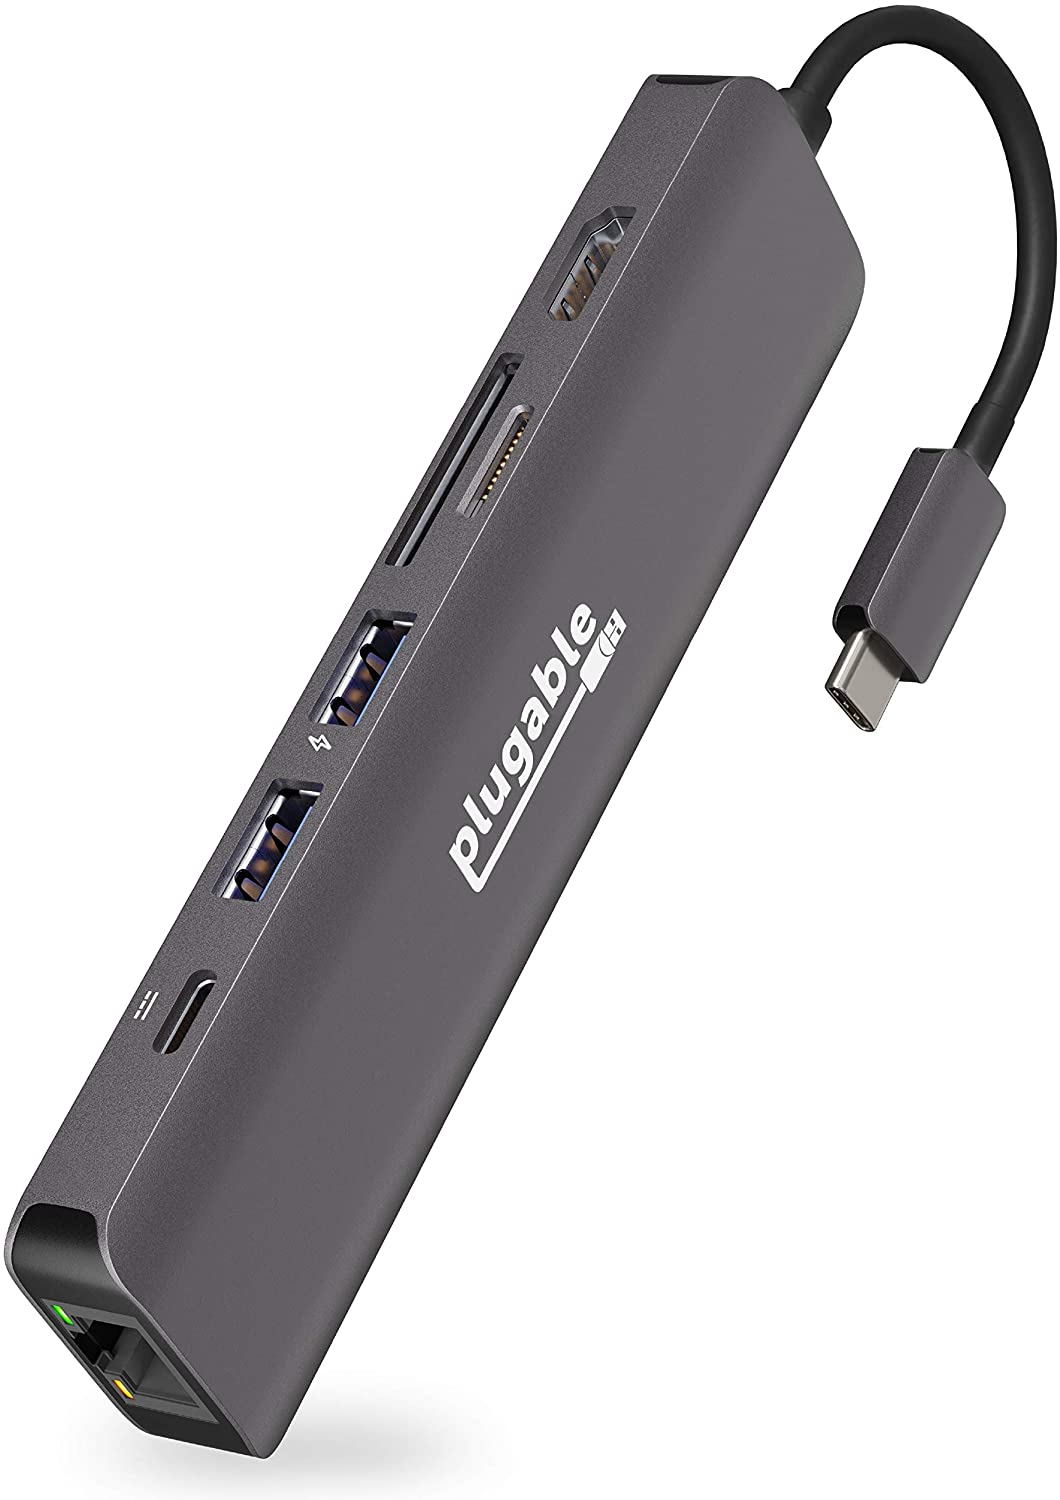 Plugable 7 In One